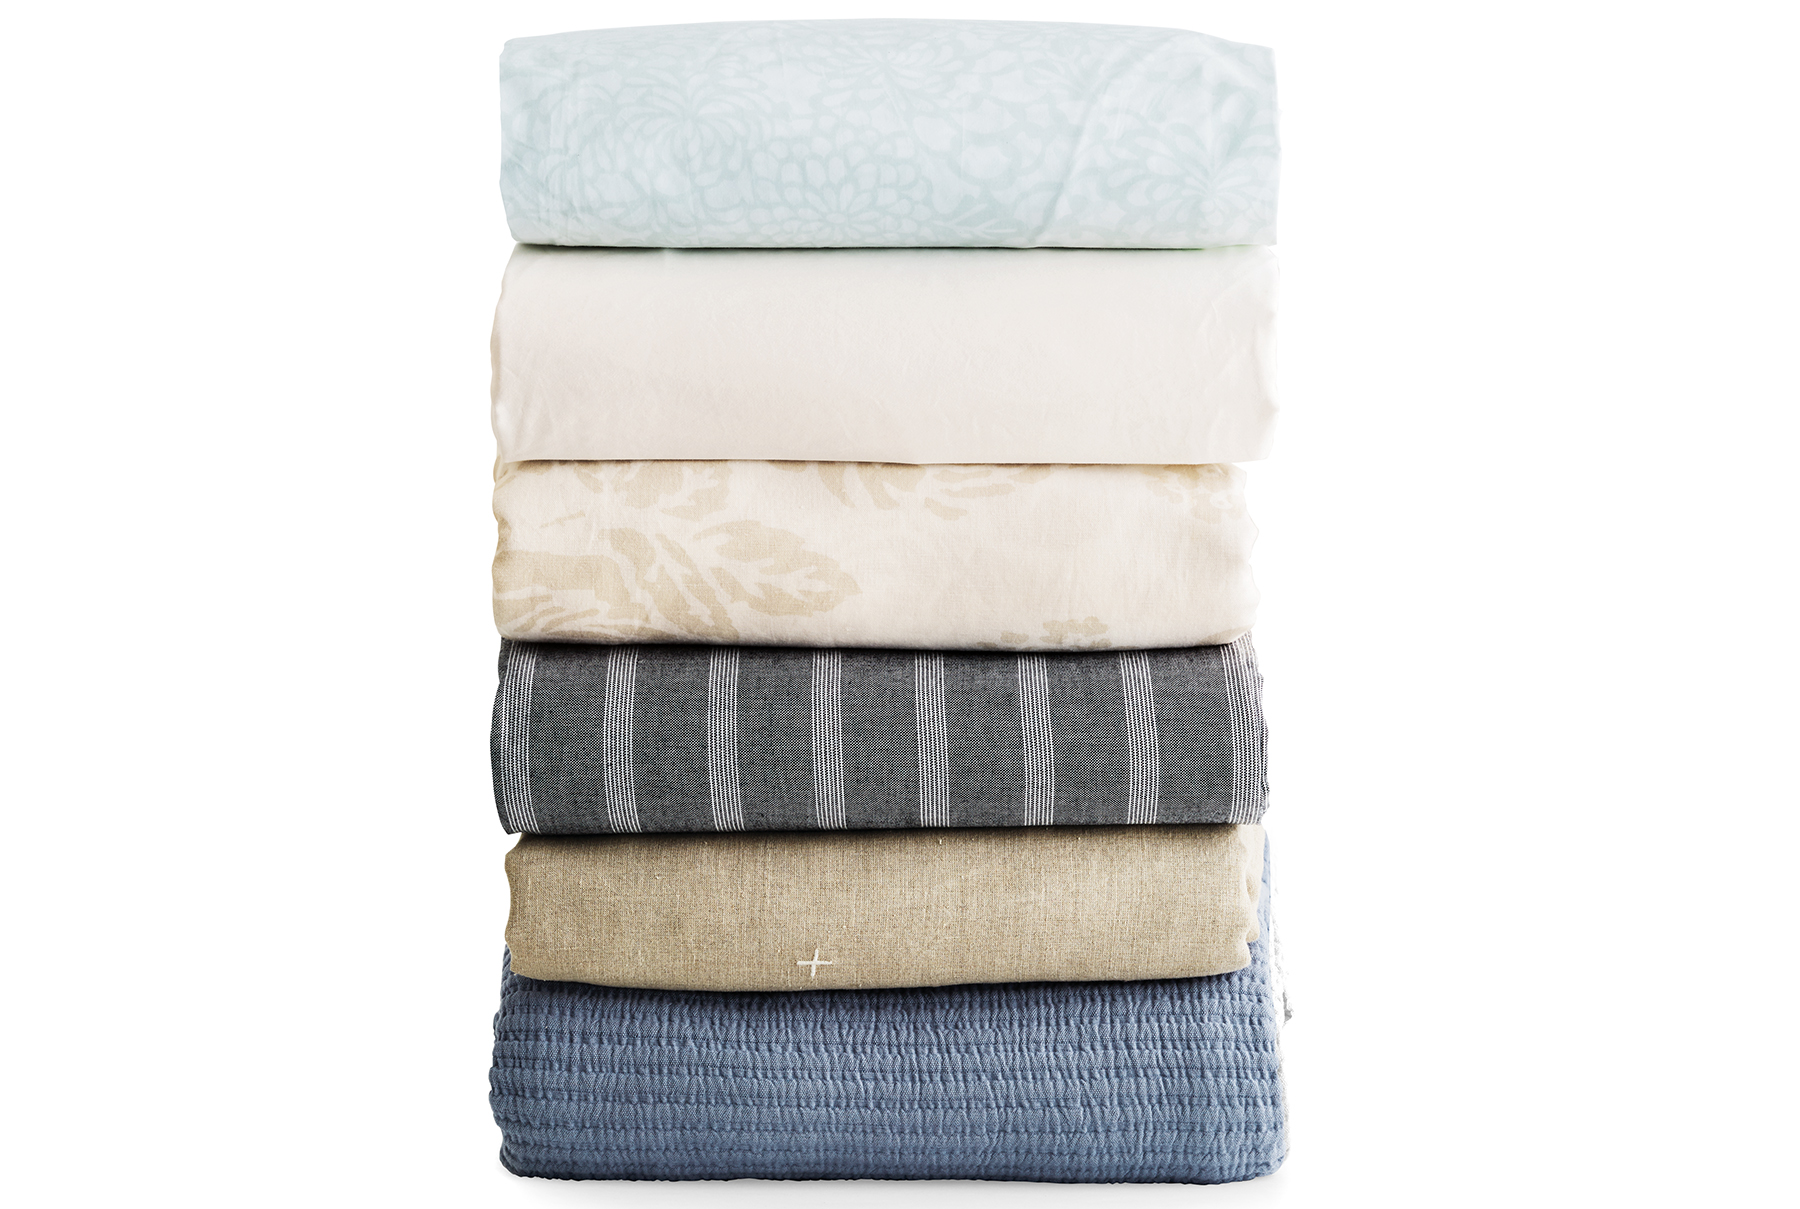 Stack of folded bedding